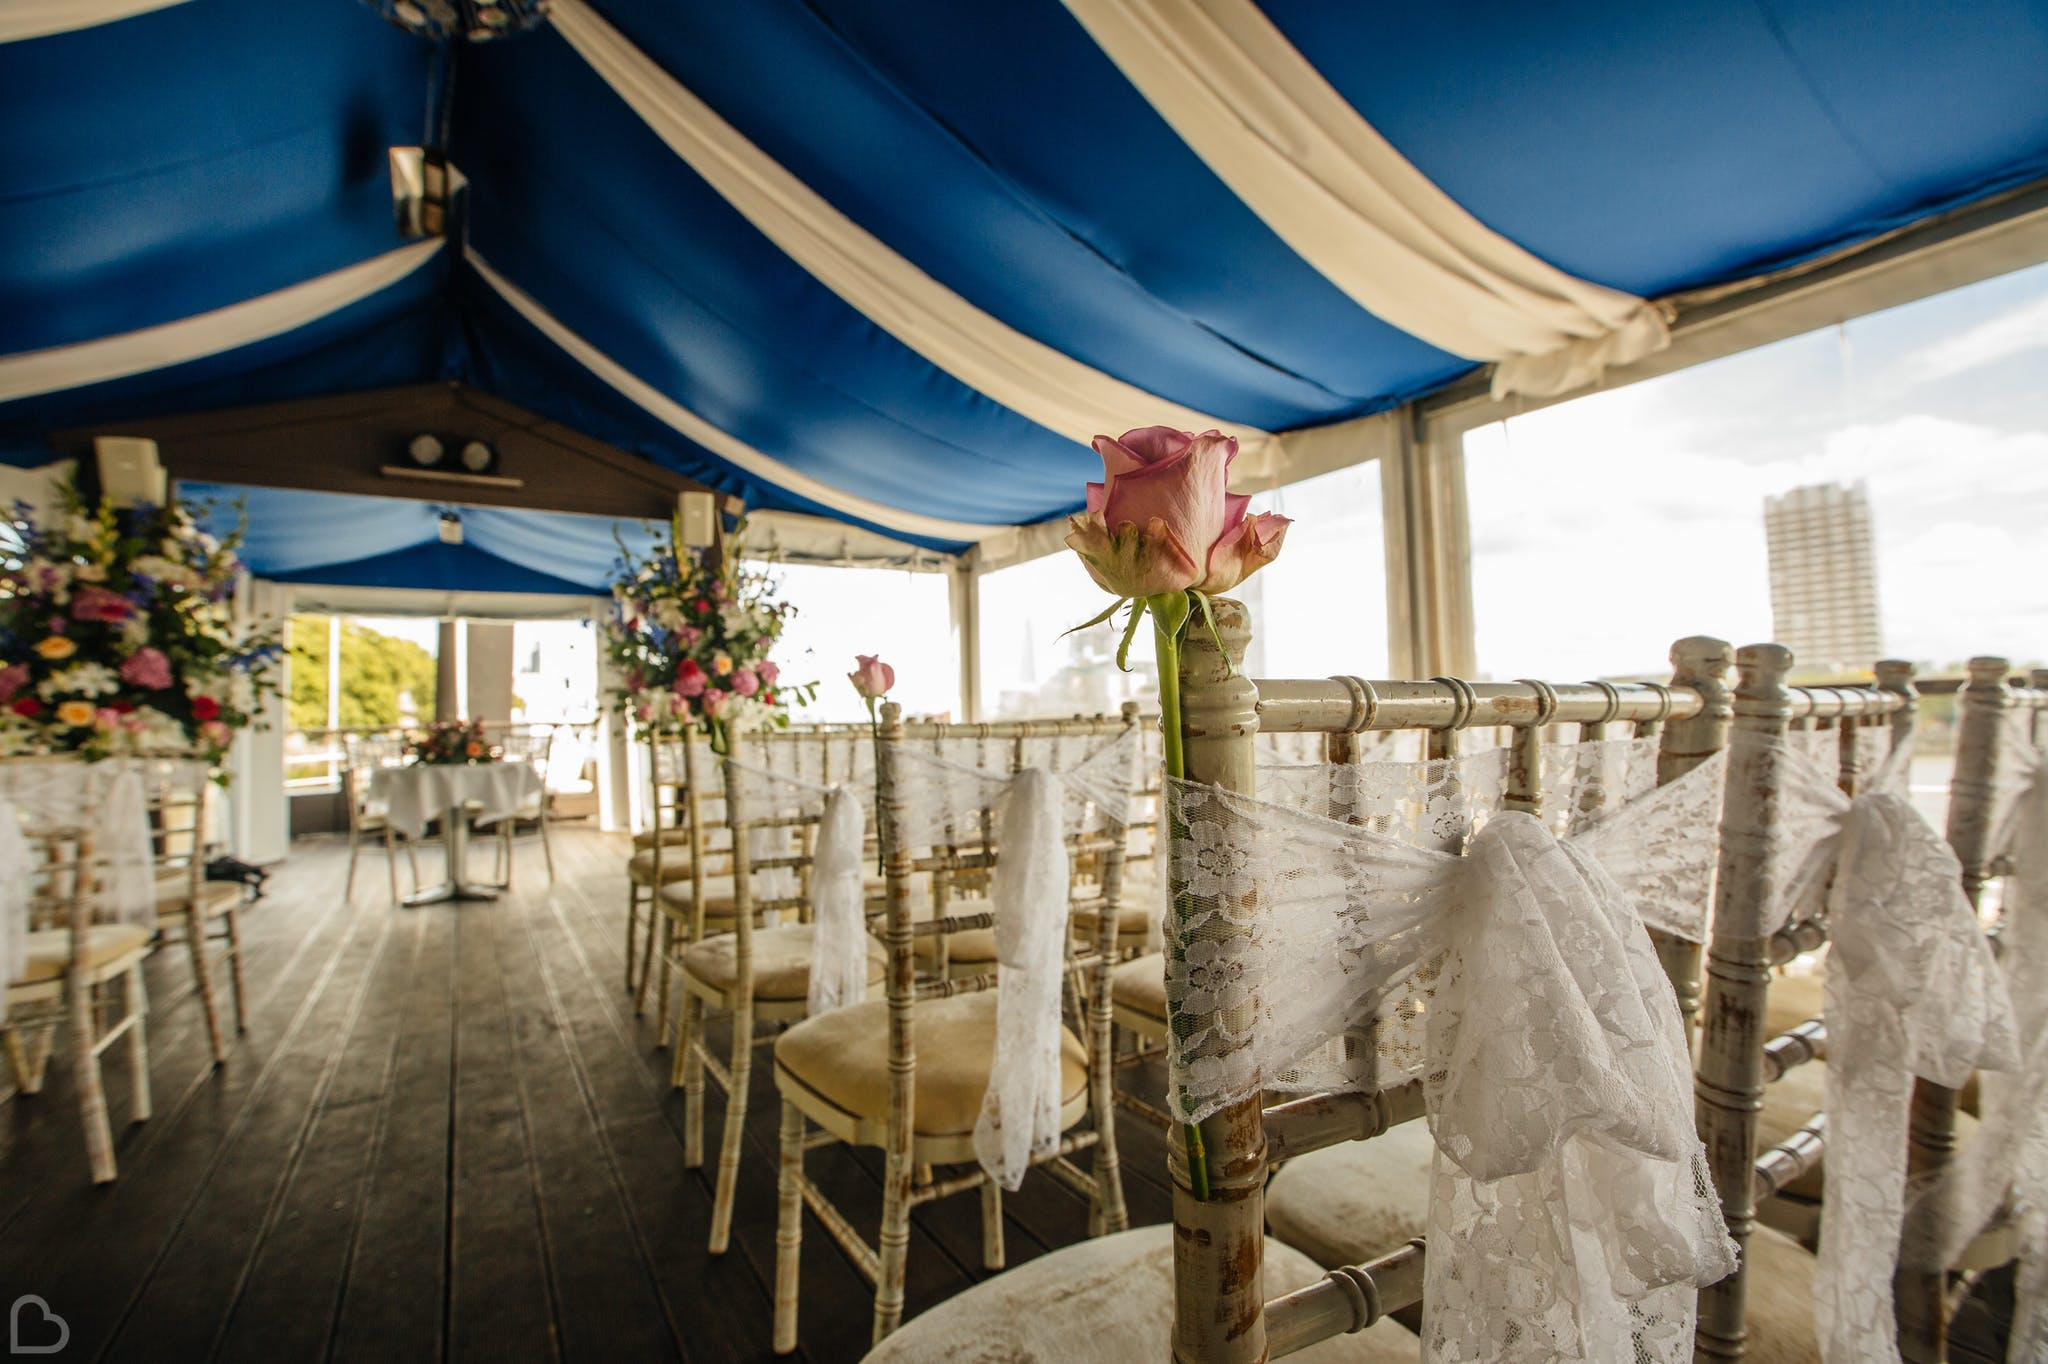 chairs set up for an outdoors ceremony at the yacht in london.